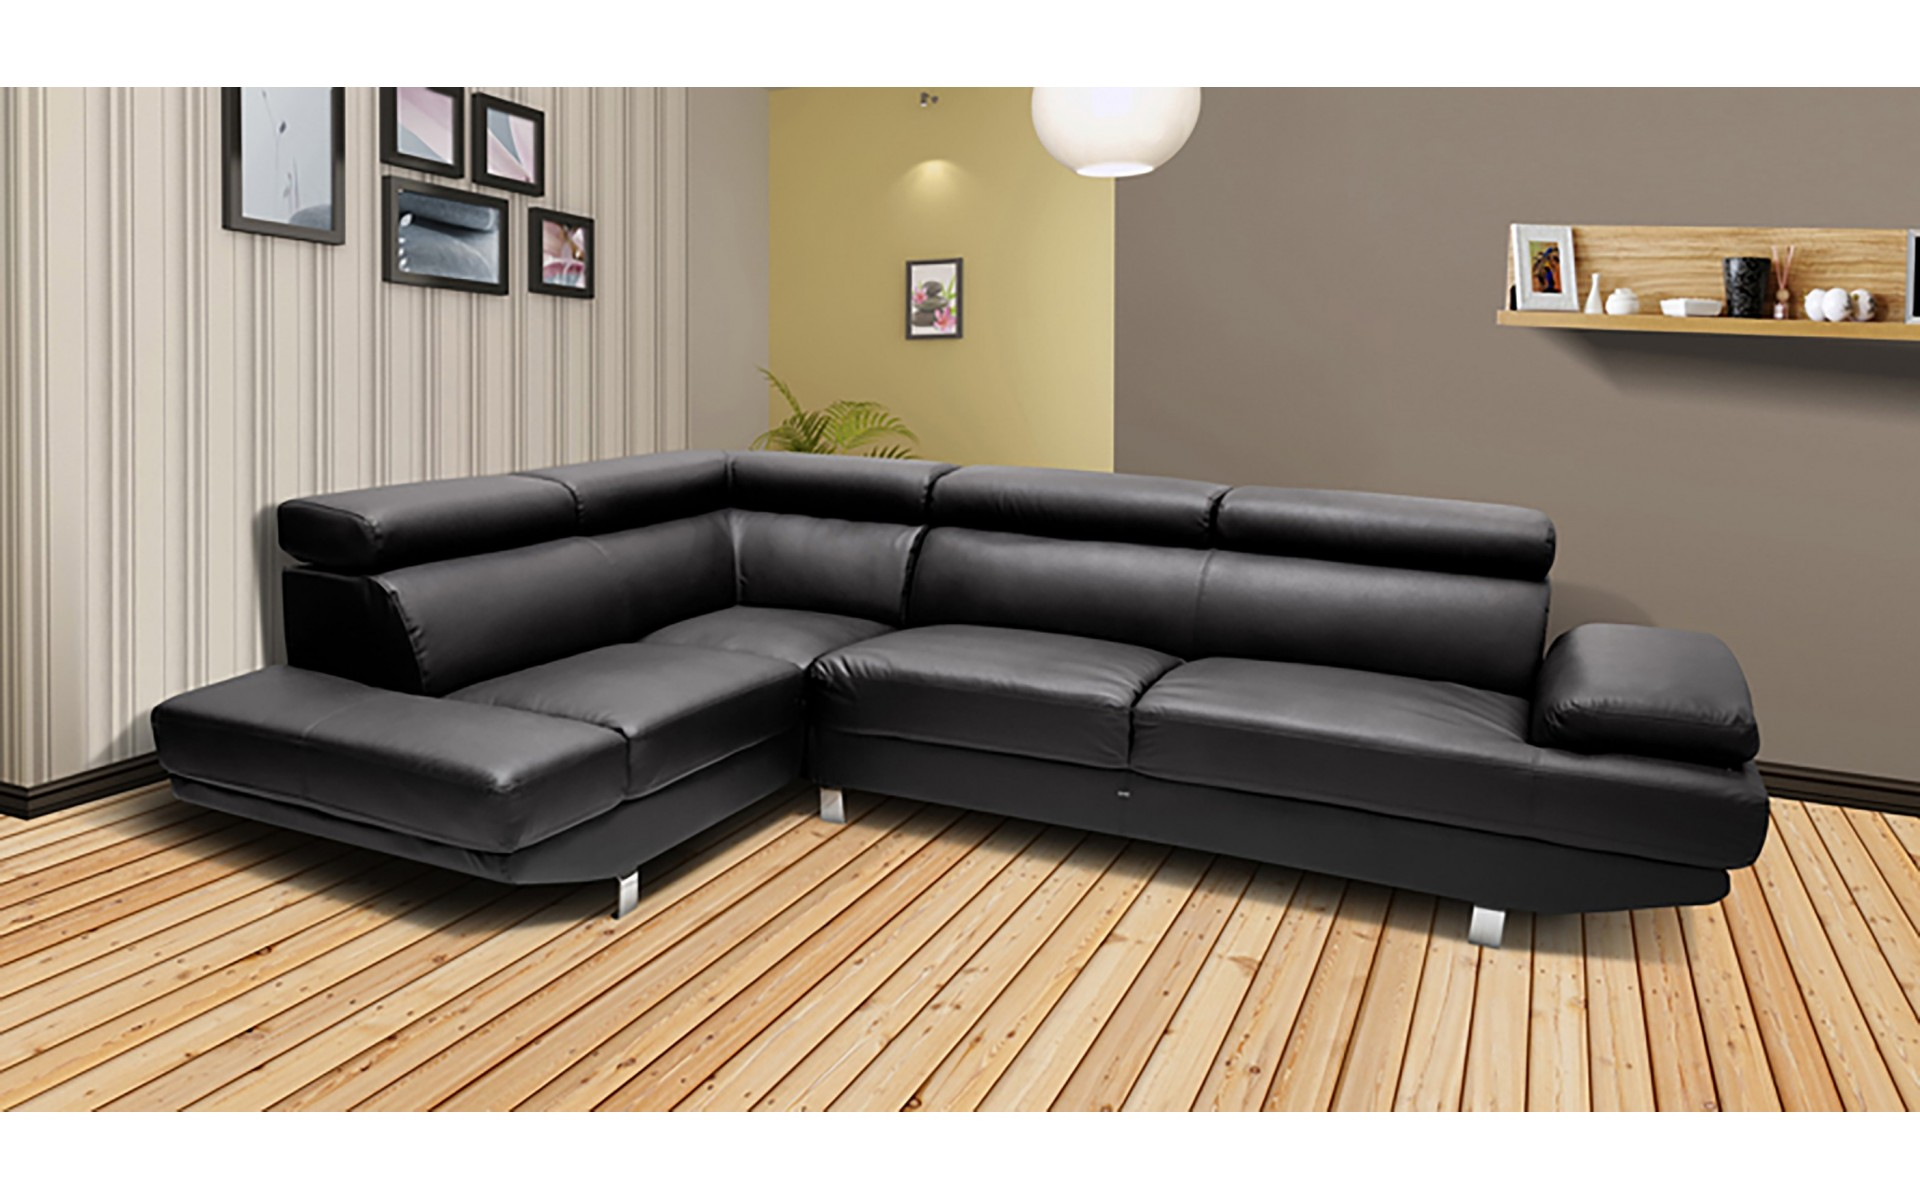 canap d angle gauche cuir royal sofa id e de canap et meuble maison. Black Bedroom Furniture Sets. Home Design Ideas